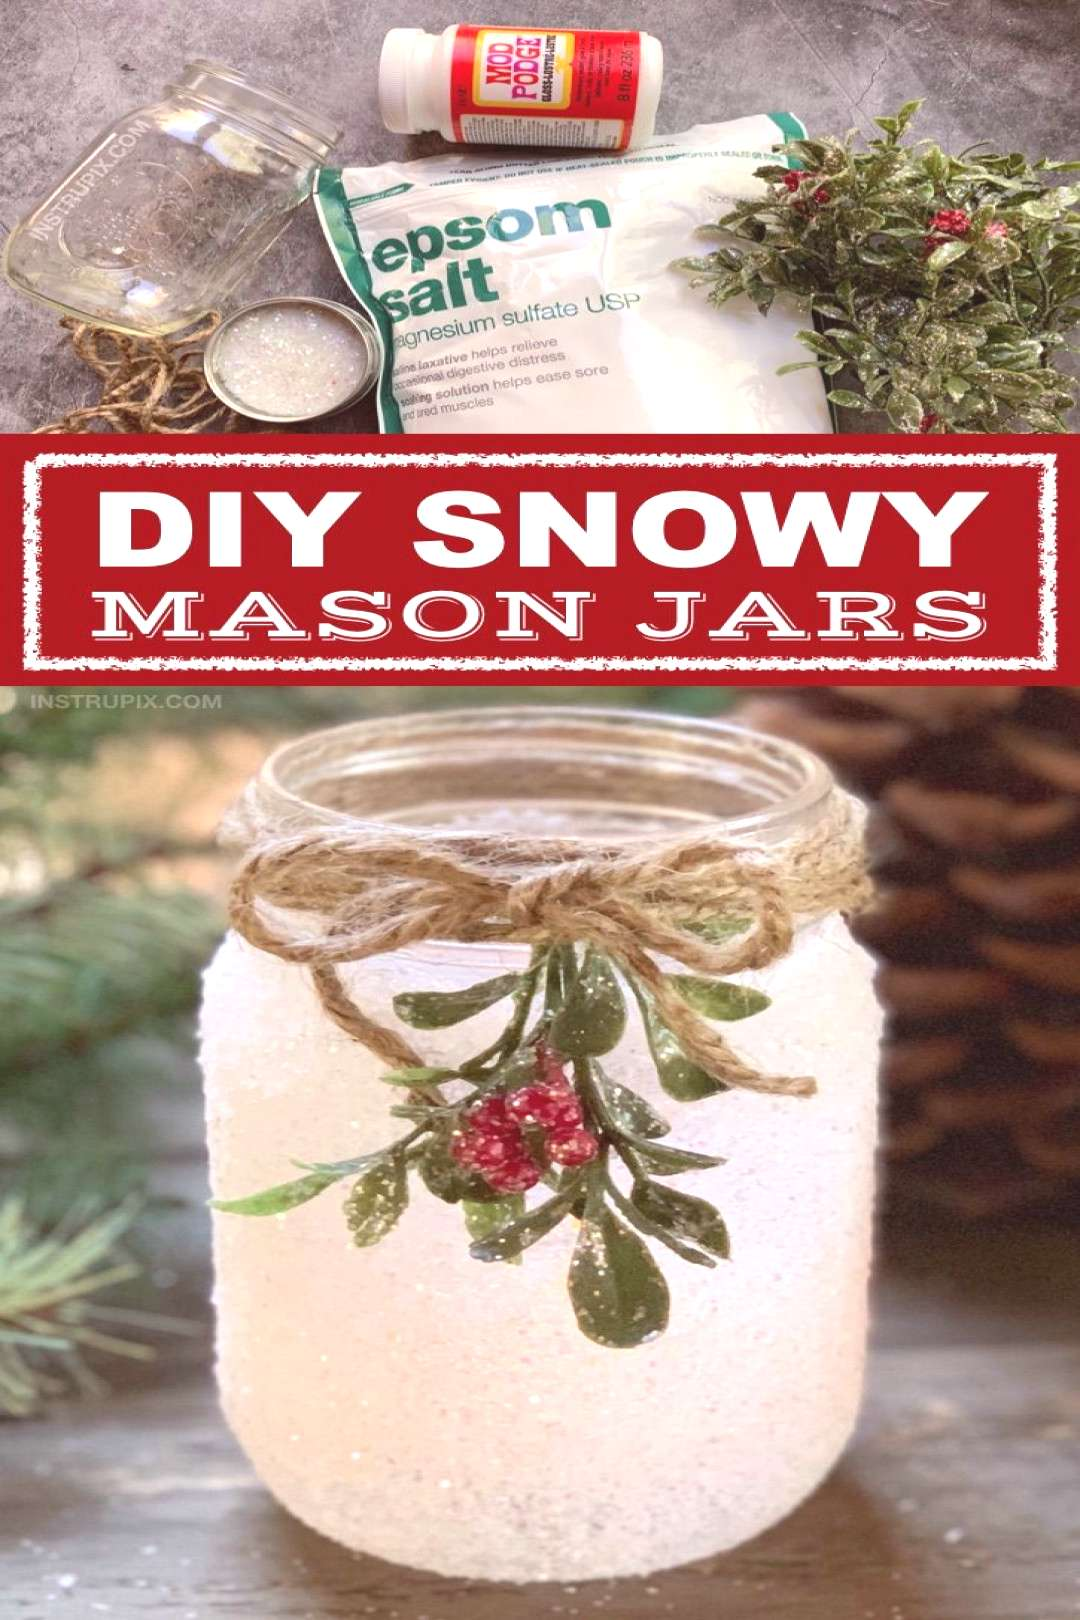 DIY Christmas Candle Holder Idea Snowy Mason Jars -- If you are looking for fun and easy Christmas